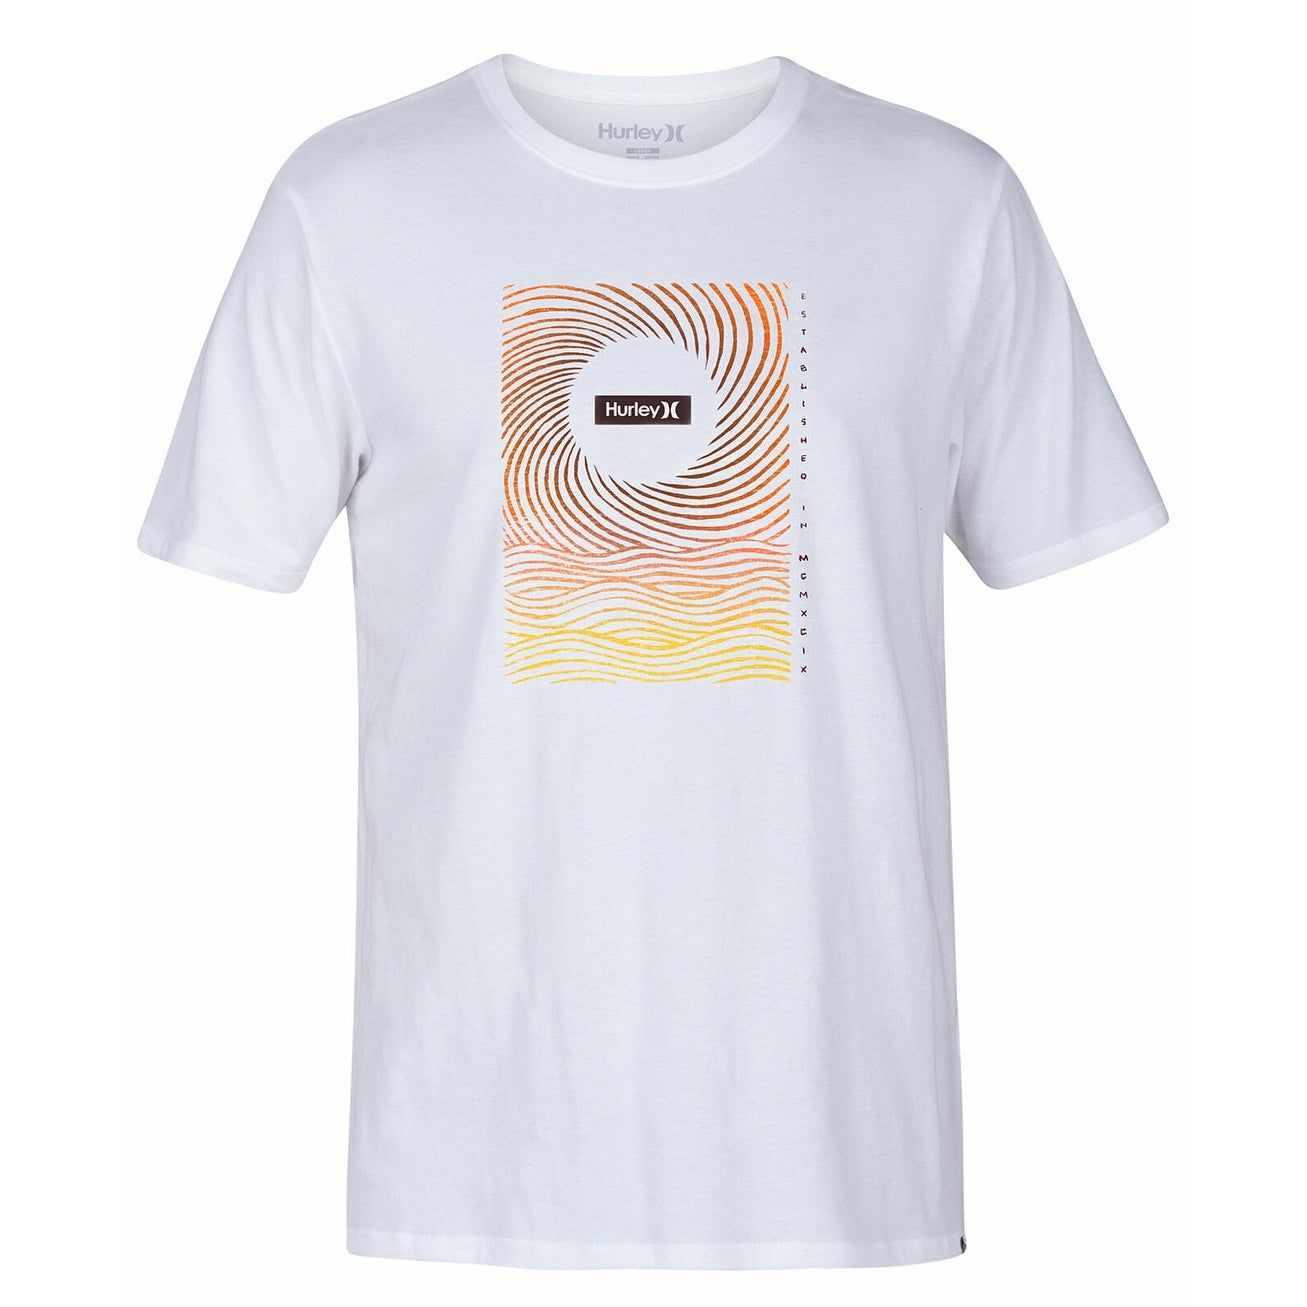 New Hurley white tropical 2 sided t shirt boys youth sz small